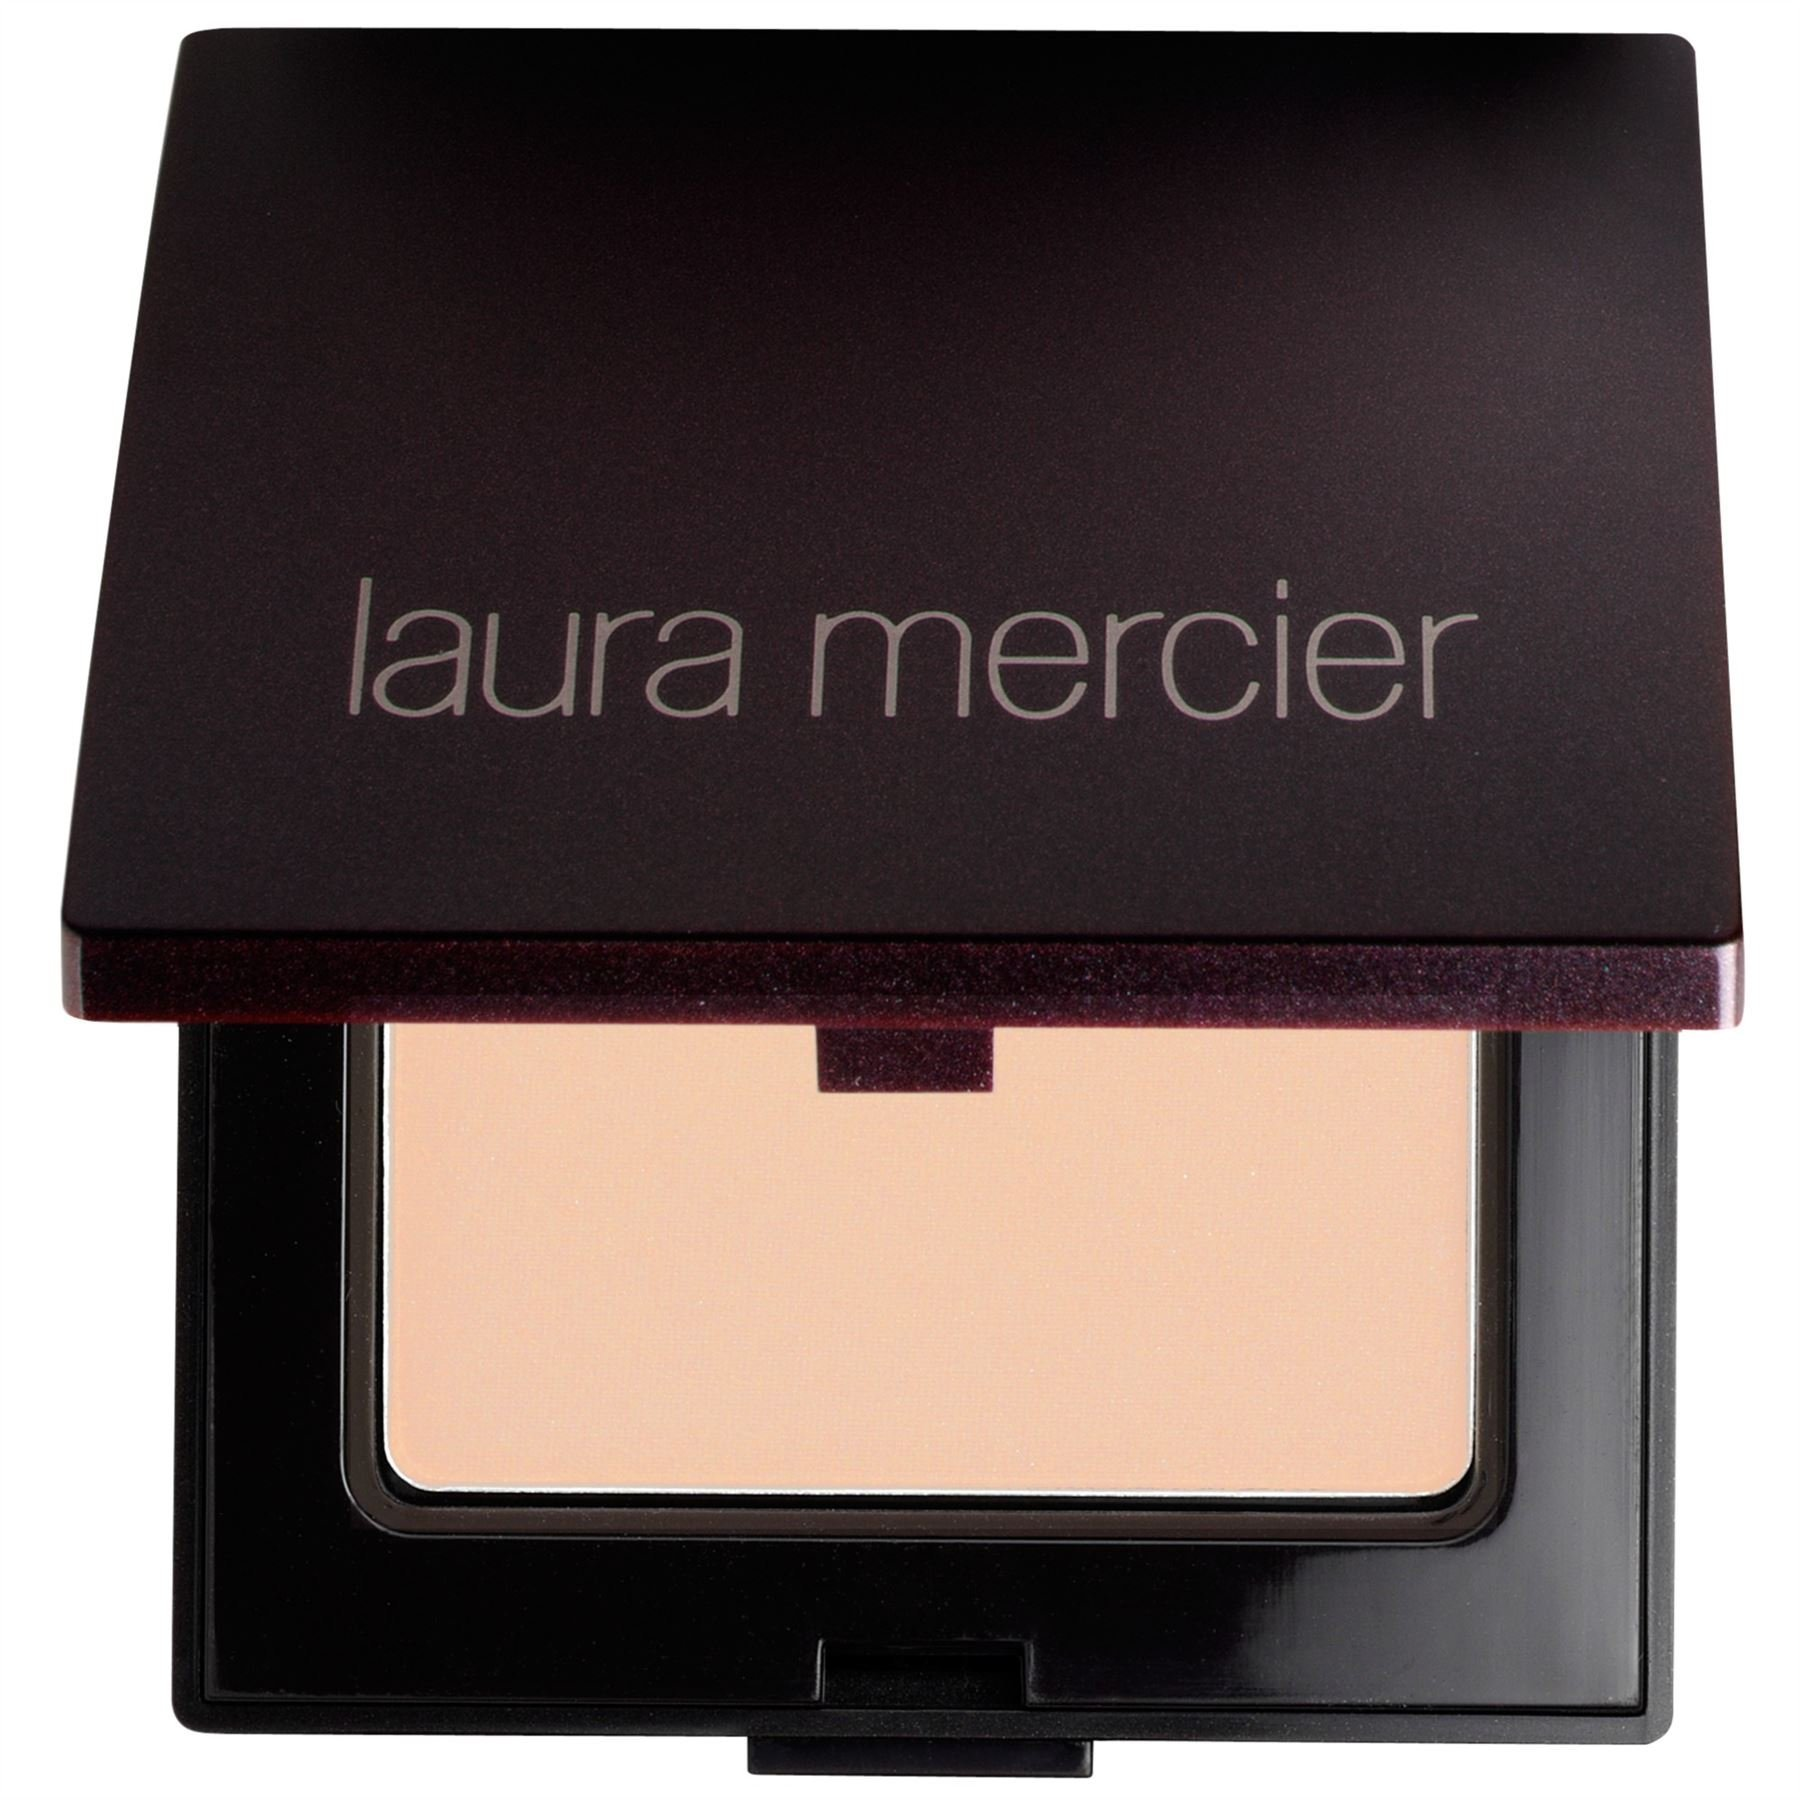 Laura Mercier Mineral Pressed Powder SPF15 Classic Beige